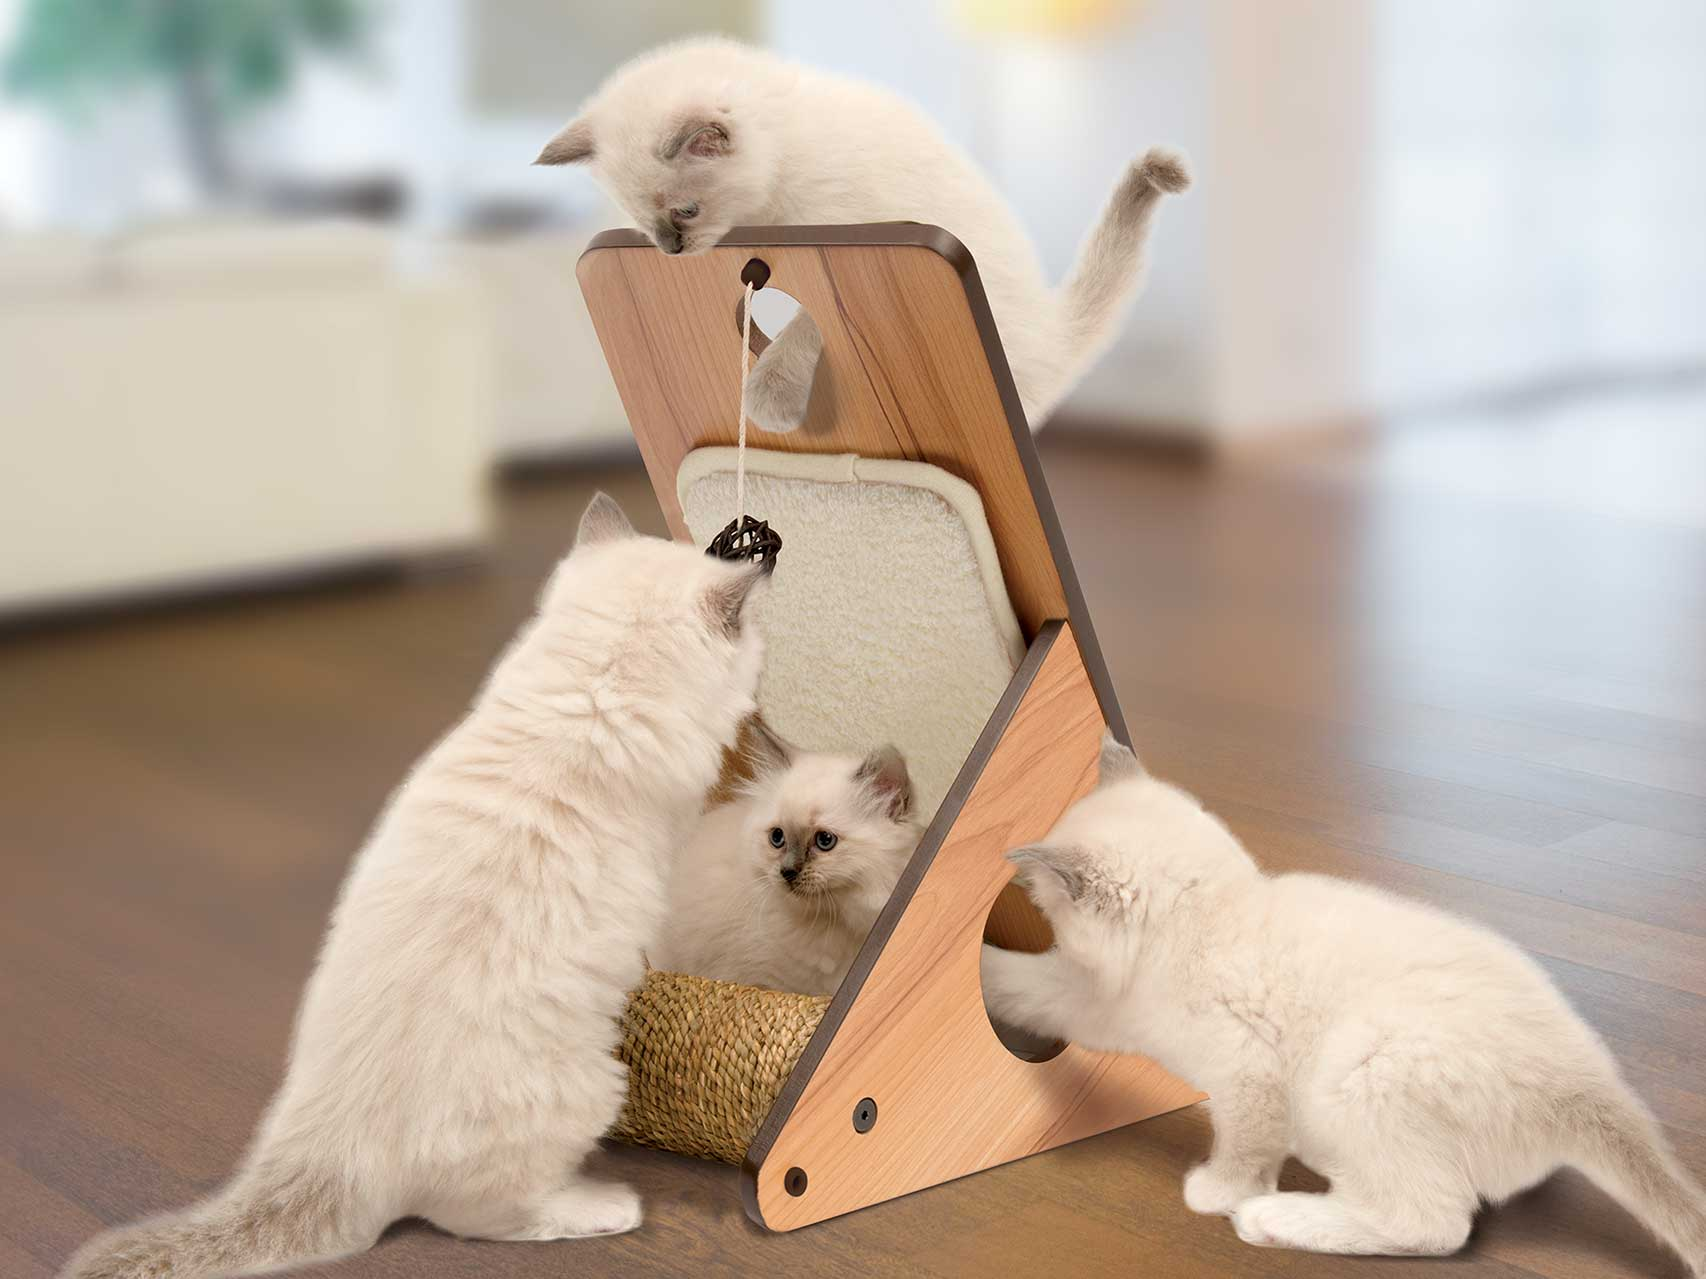 Kittens playing on a Vesper Play Center